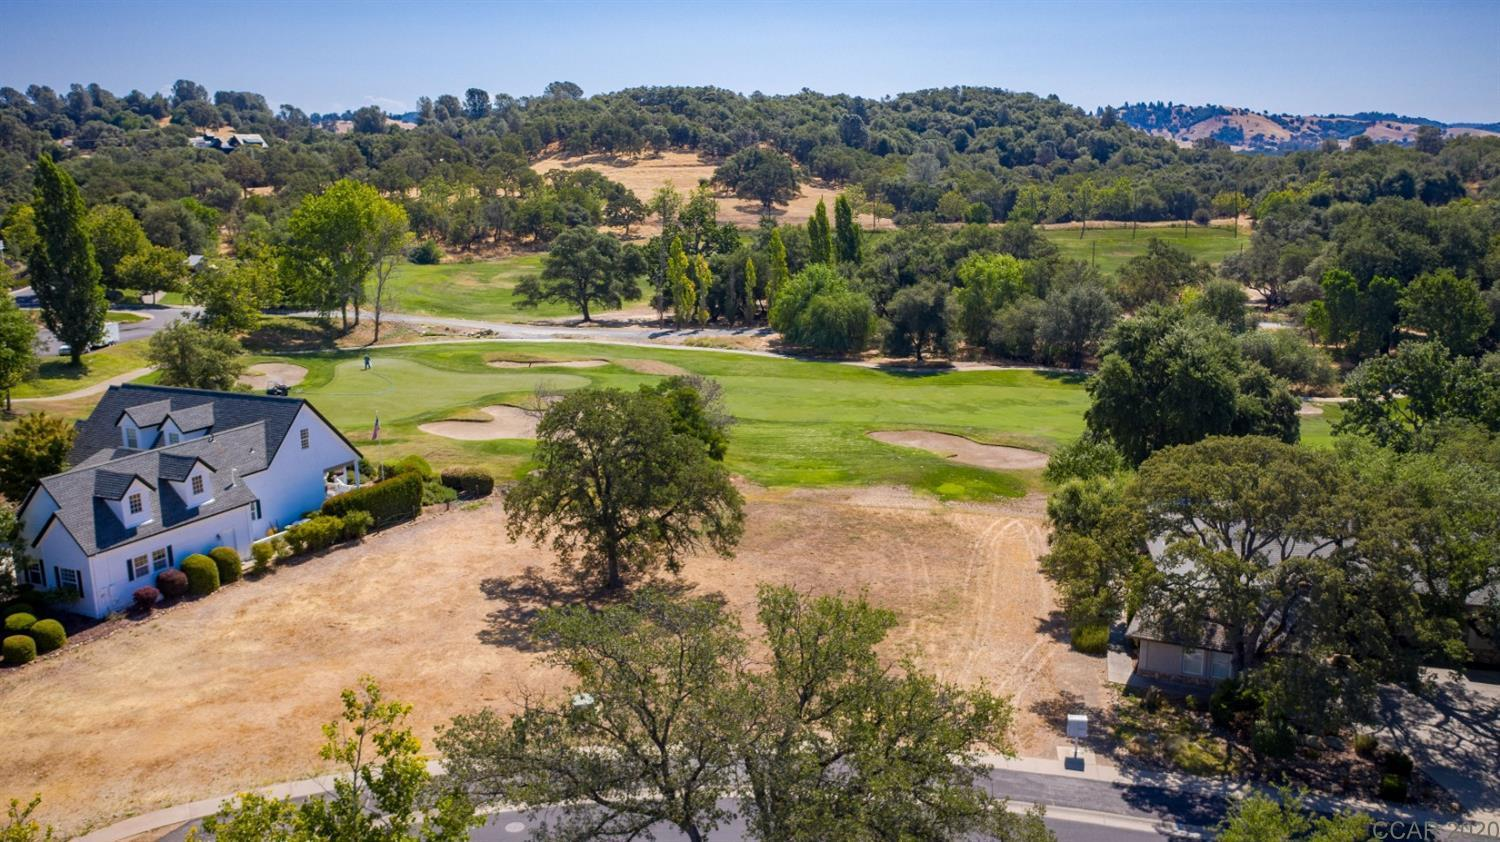 719 Selkirk Ranch Rd, Angels Camp, CA, 95222